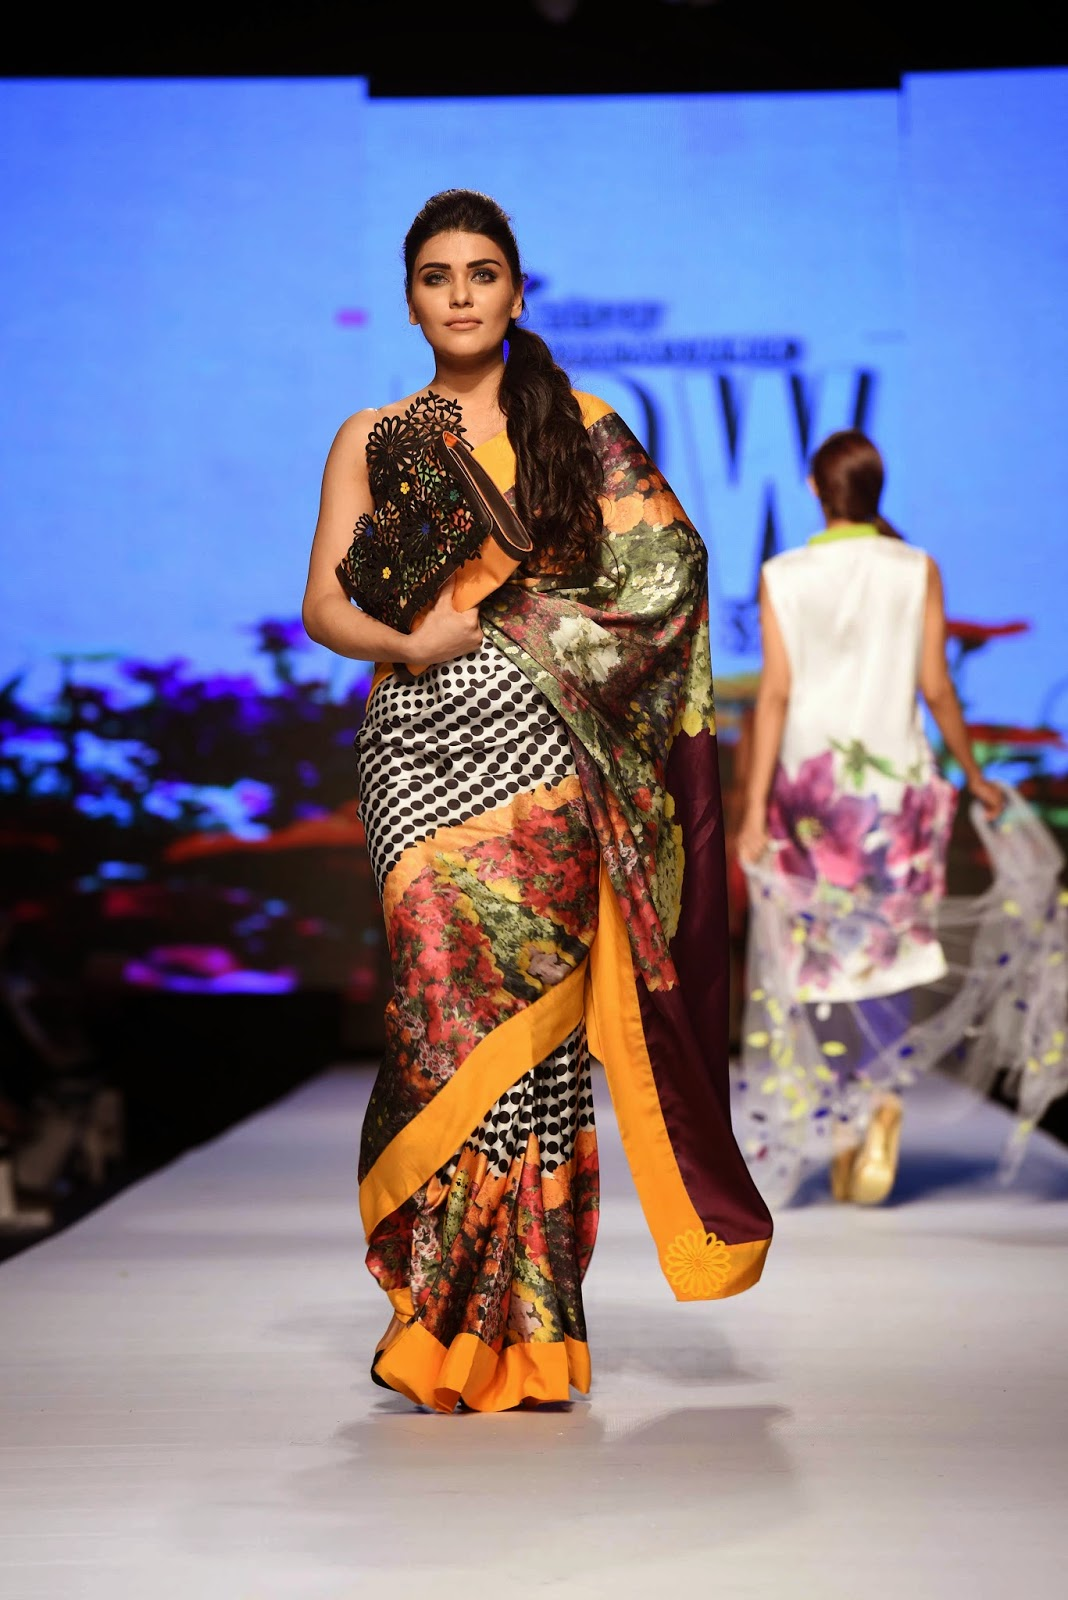 Madiha Raza Telenor Fashion Pakistan Week 2015 Day 1